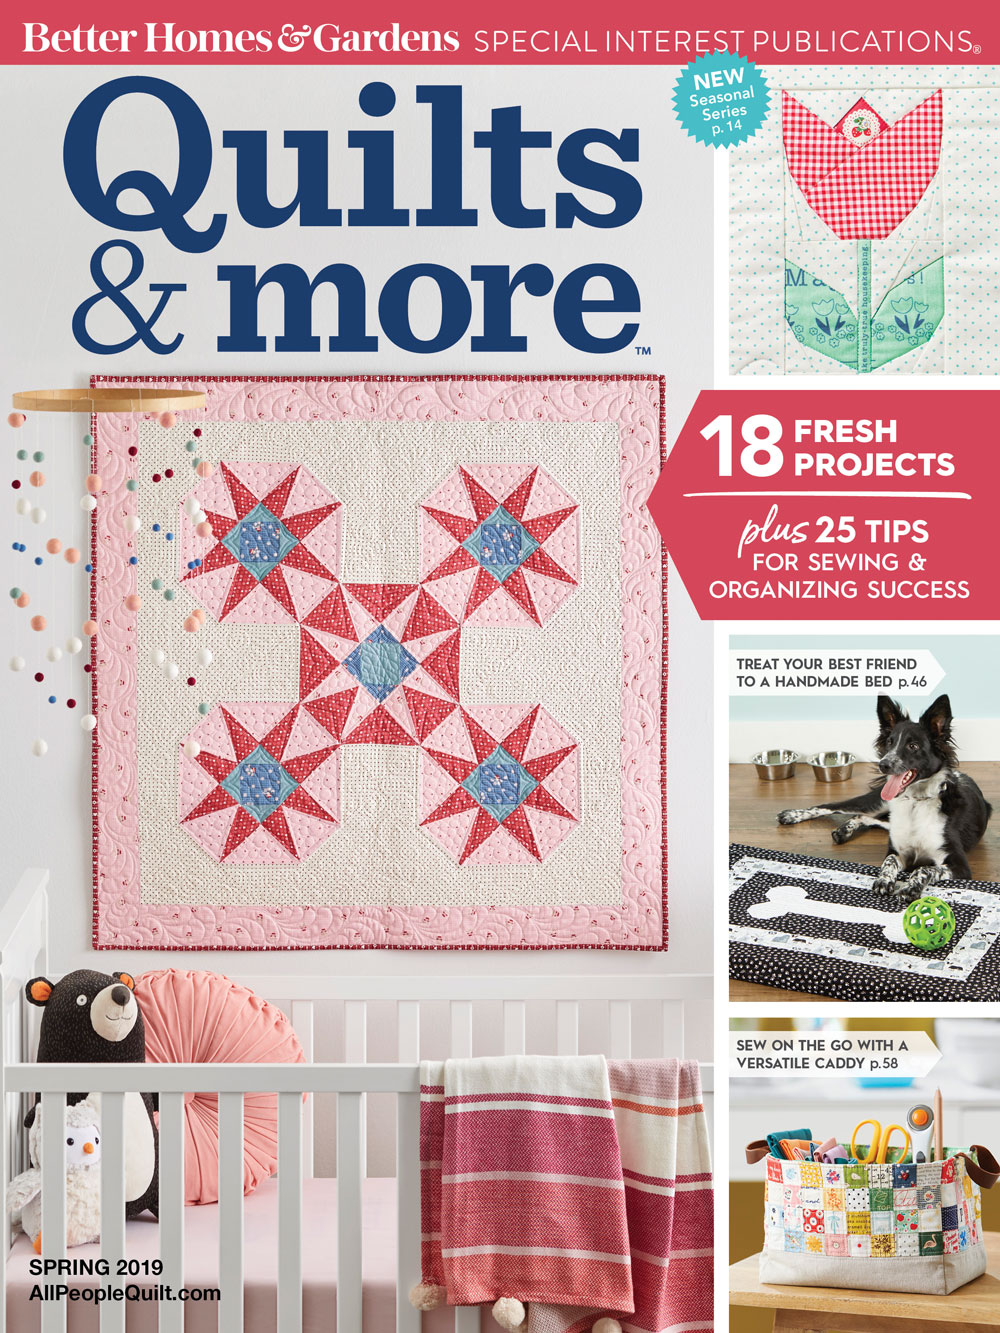 Quilts & More Spring 2019. Used with permission from Quilts & More™ magazine. ©2019 Meredith Corporation. All rights reserved.